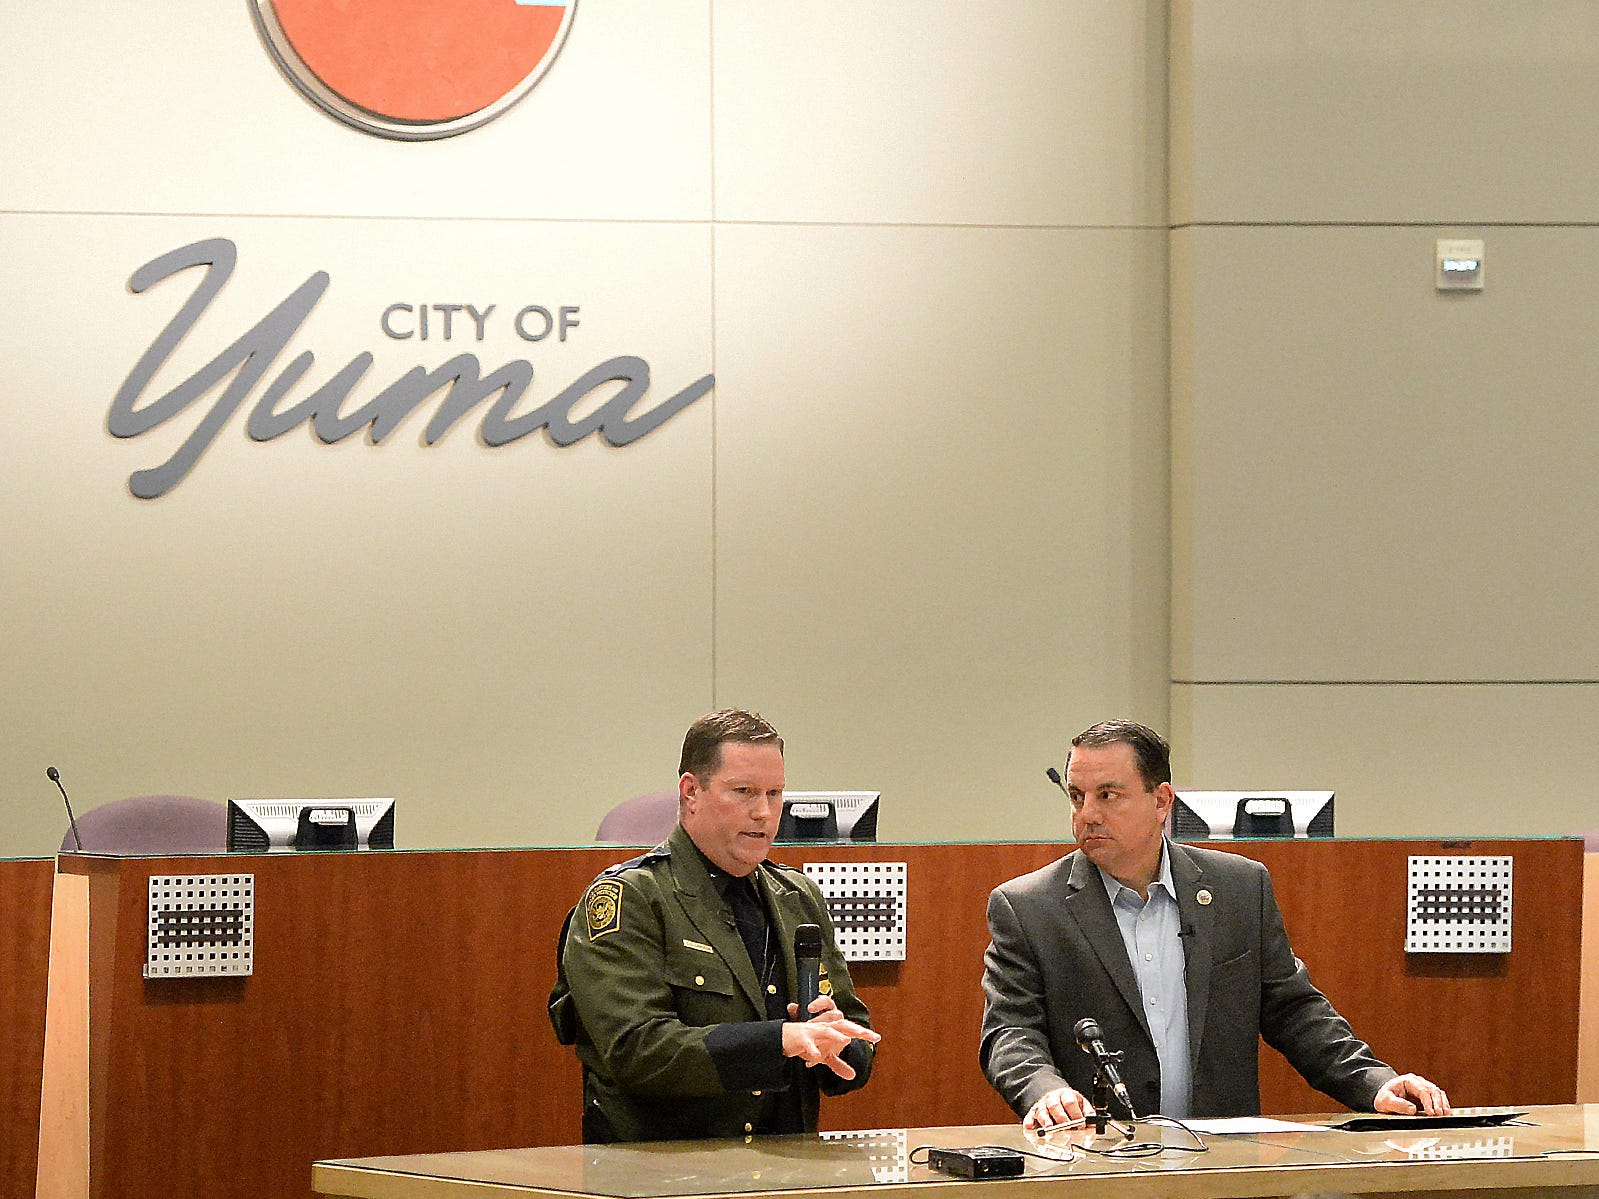 U.S. Border Patrol Deputy Chief Patrol Agent for the Yuma Sector, Carl Landrum (left) answers a question during Yuma Mayor Doug Nicholls' news conference inside Yuma City Council Chambers about the current humanitarian crisis in the border region due to high volumes of illegal migrant crossings  on March 28, 2019, in Yuma.